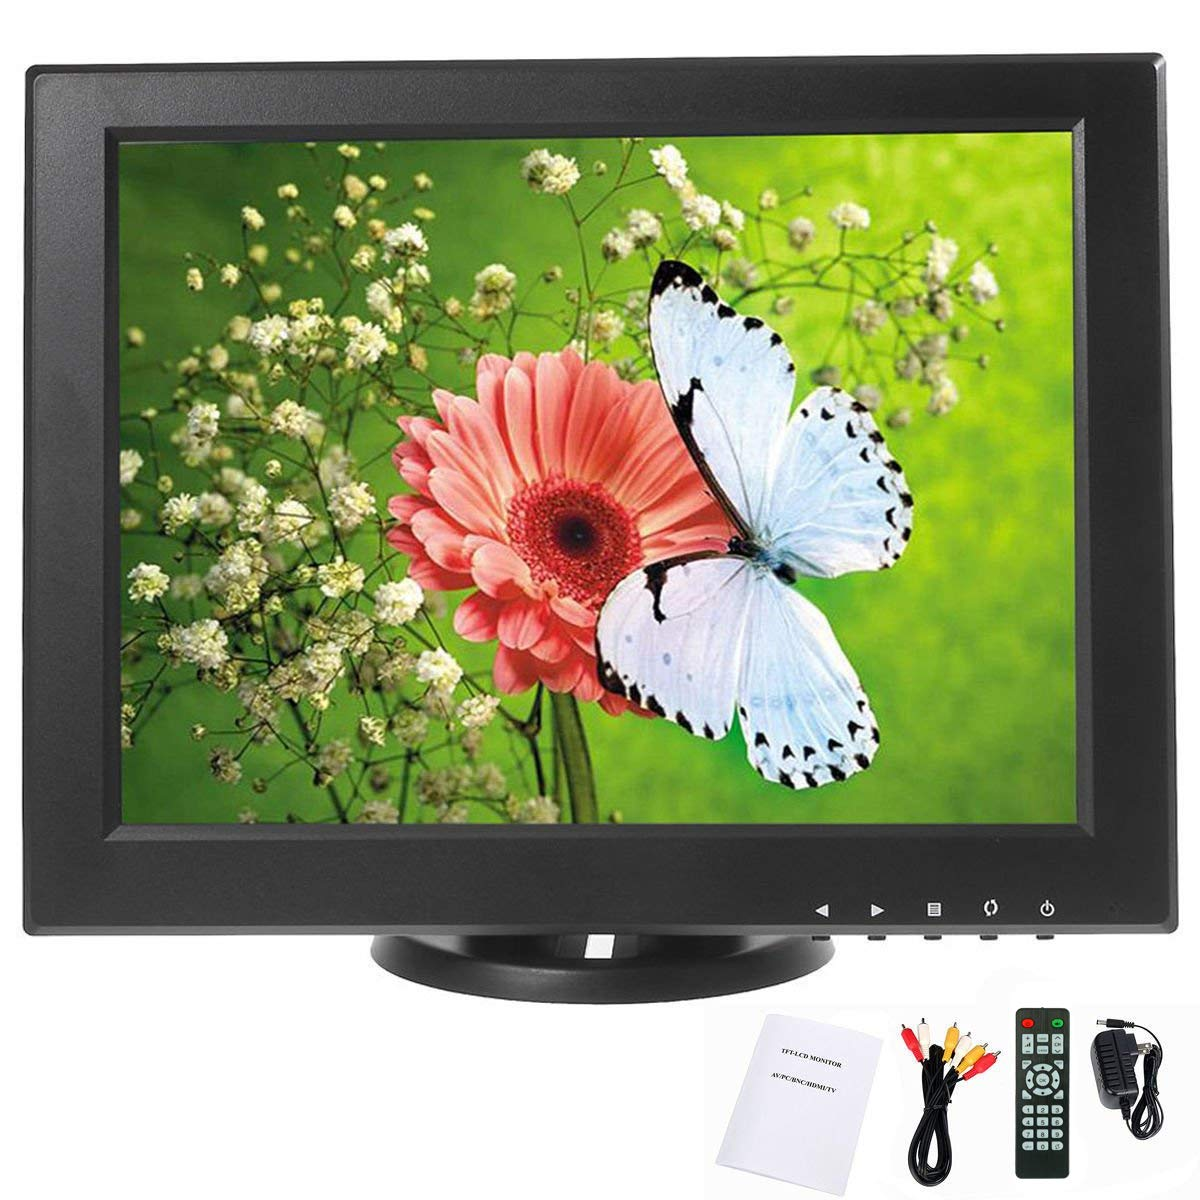 YaeCCC 12 inch LCD Monitor VGA/AV/HDMI/TV Input Display Security Camera 800 x 600 Computer Screen Compatible for CCTV